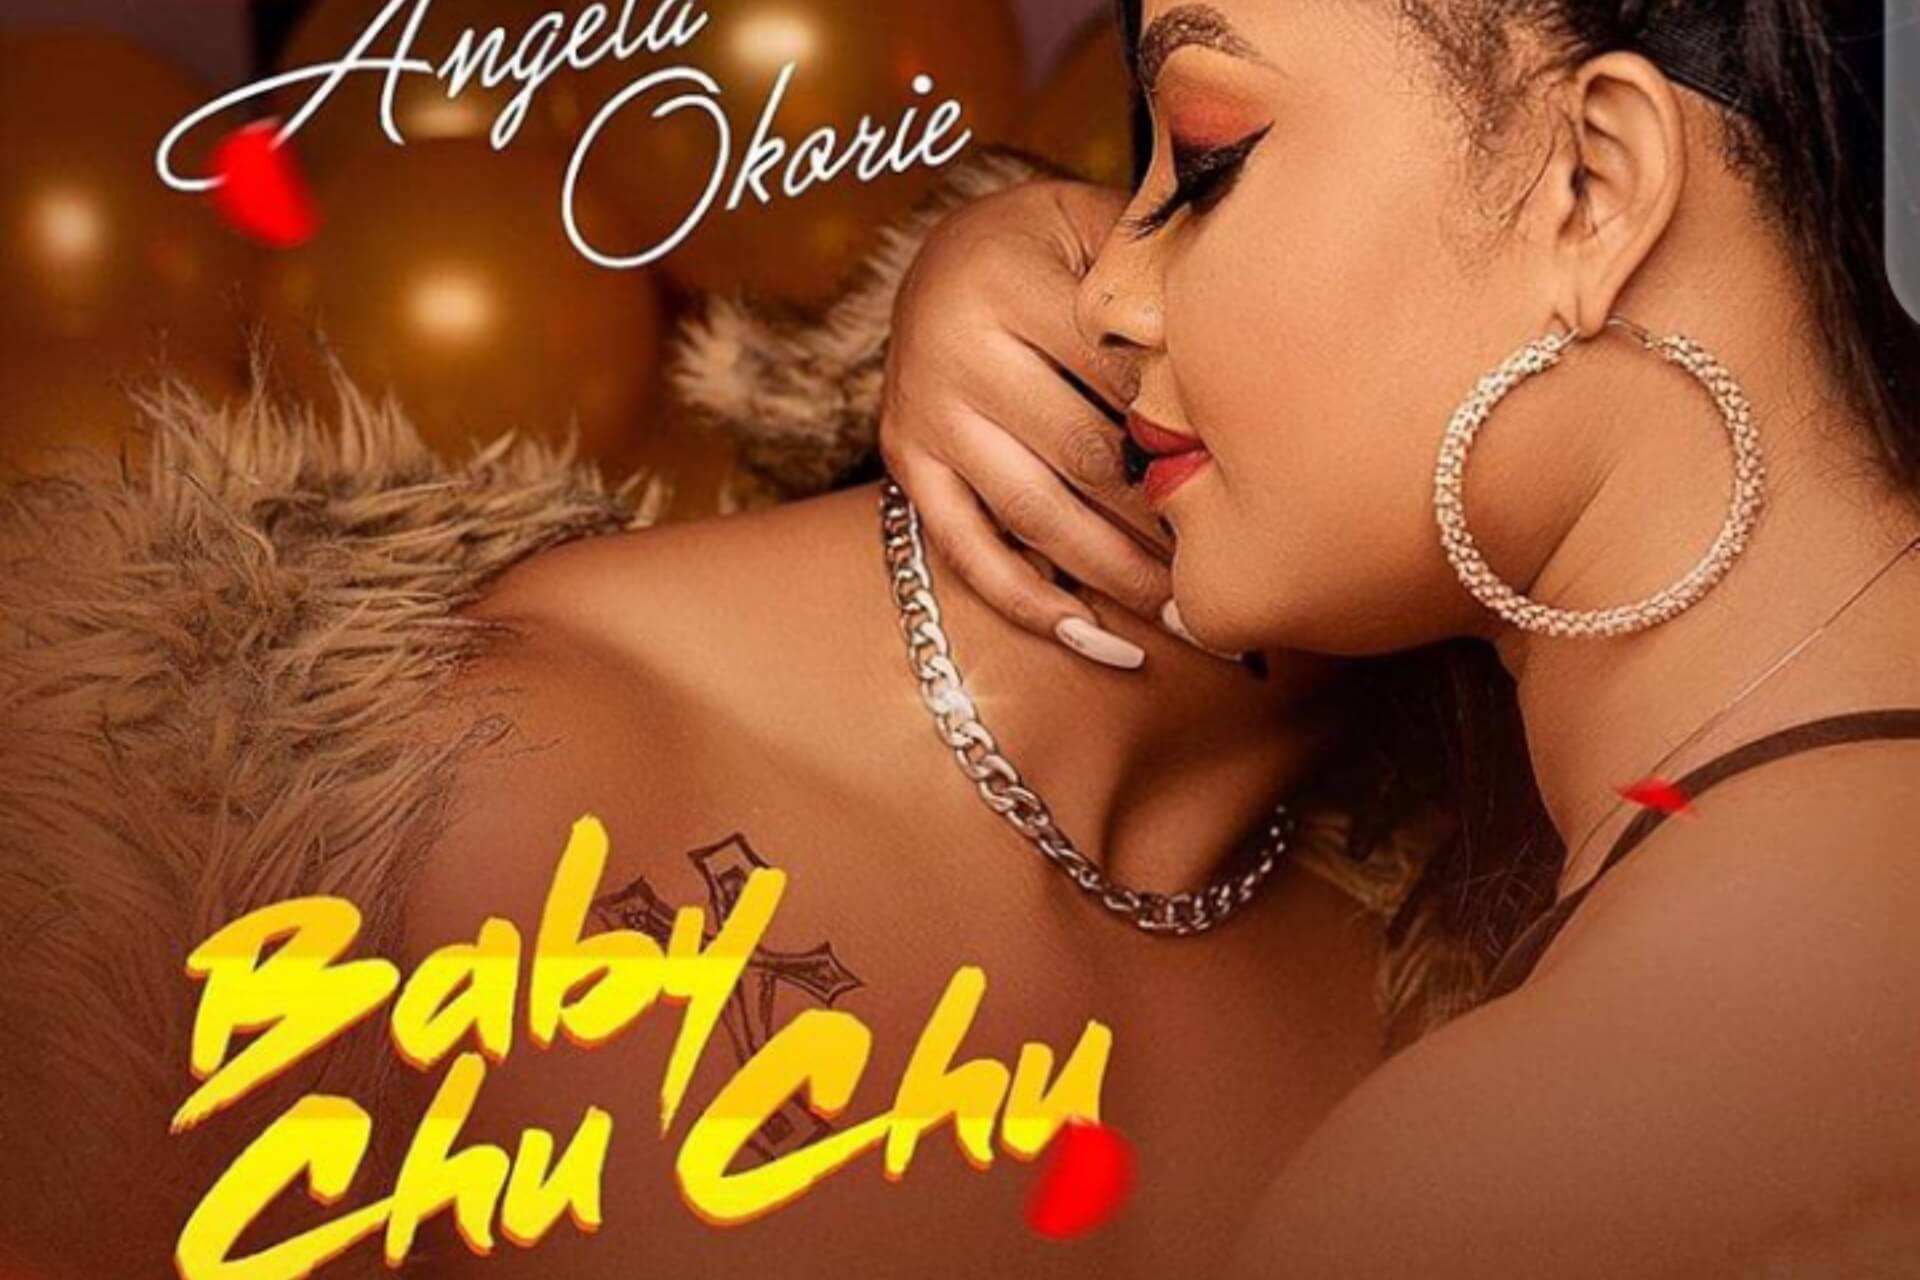 Actress Angela Okorie releases new song